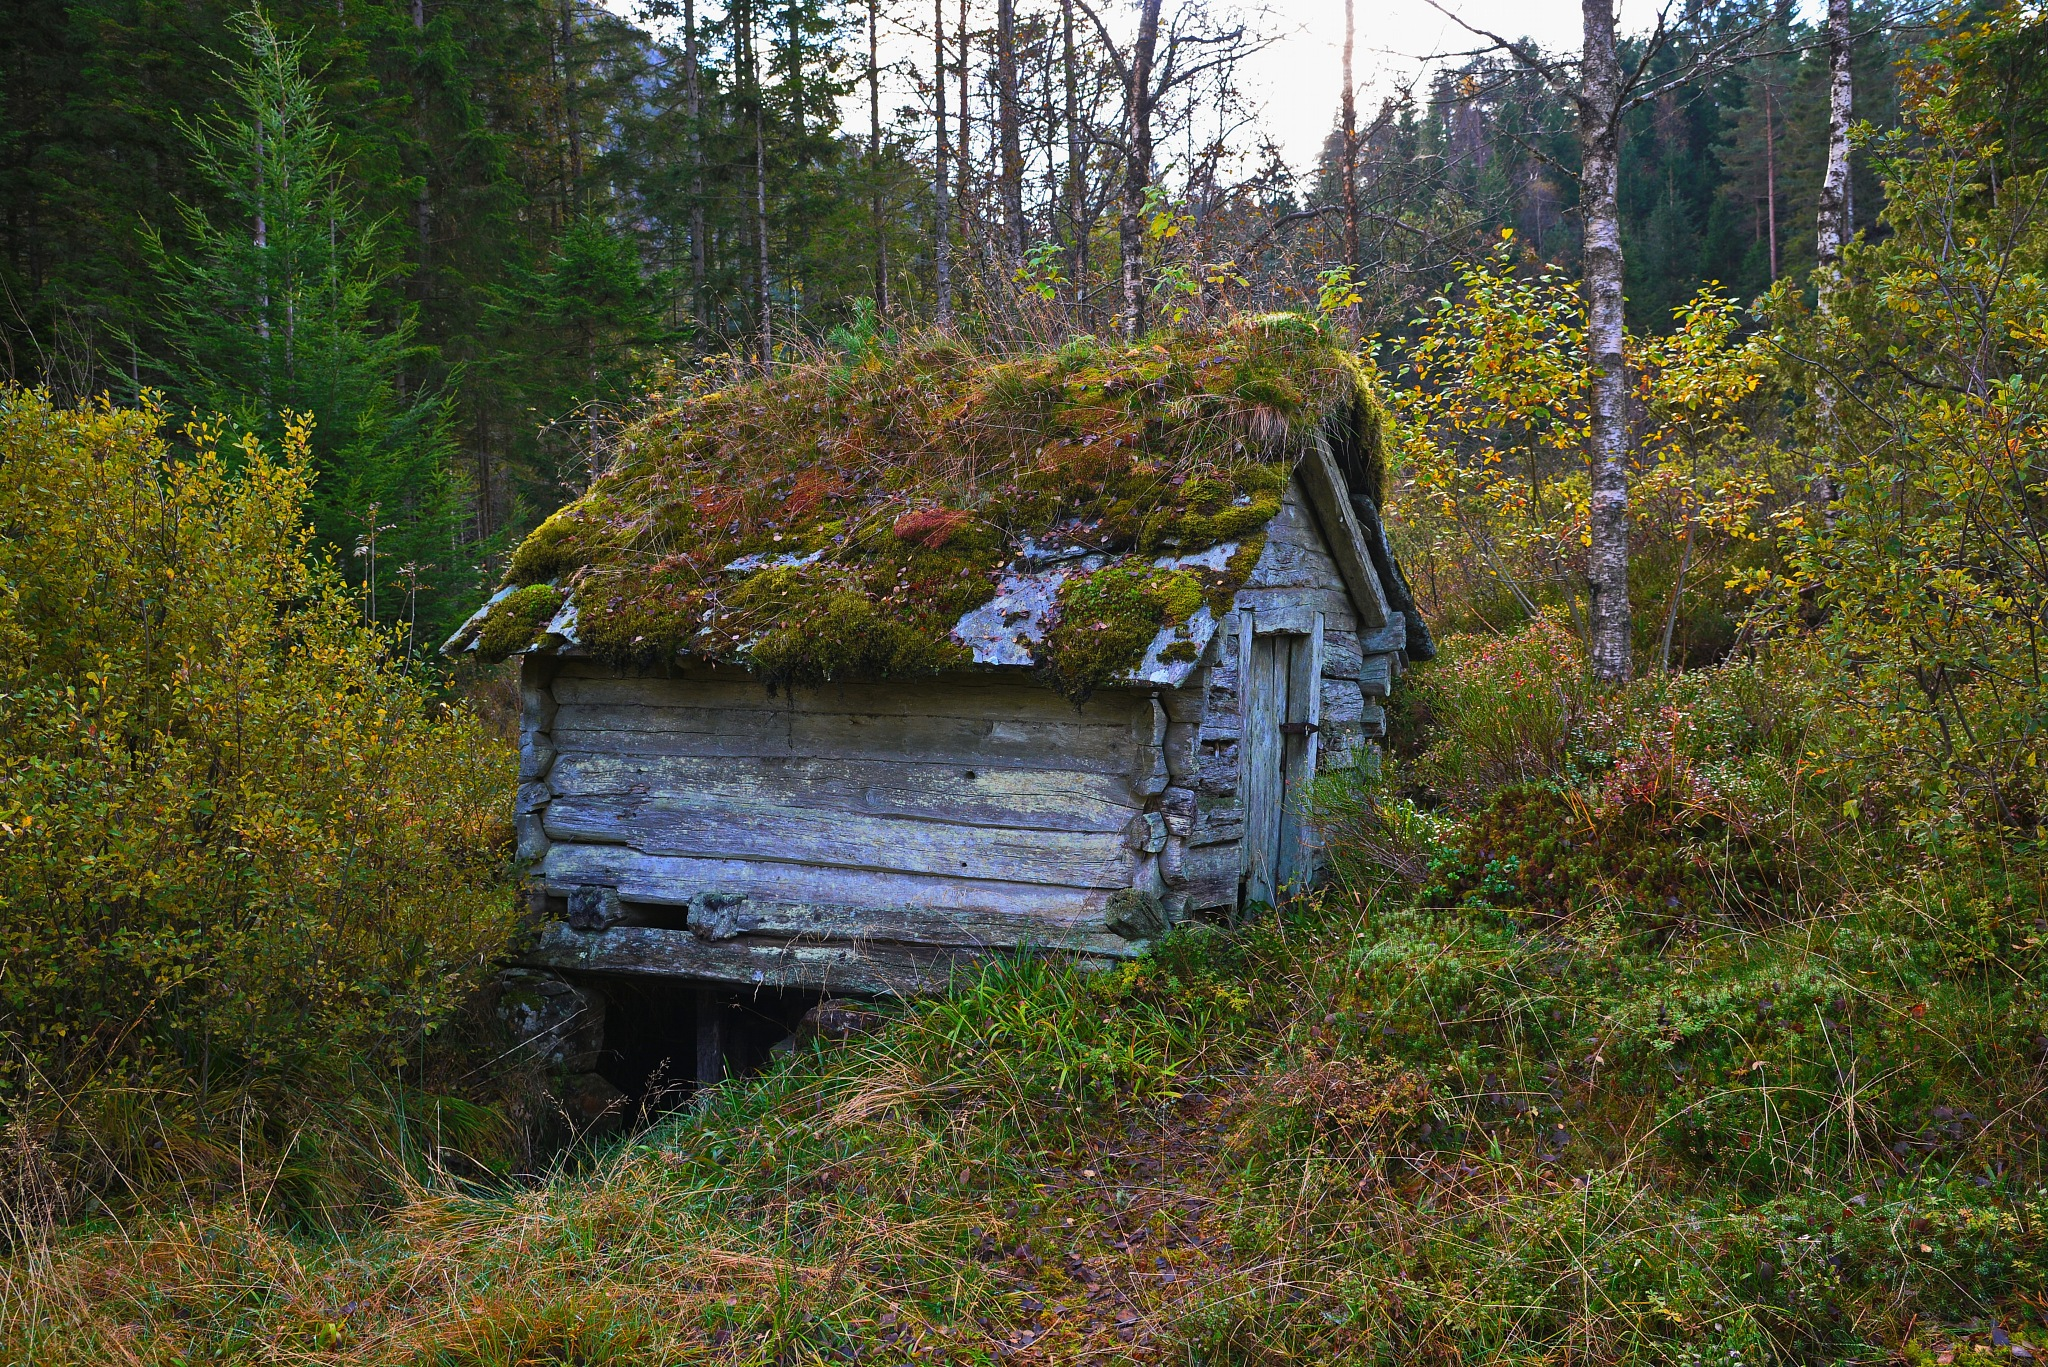 old shed from the 18oo century by Per Molvik